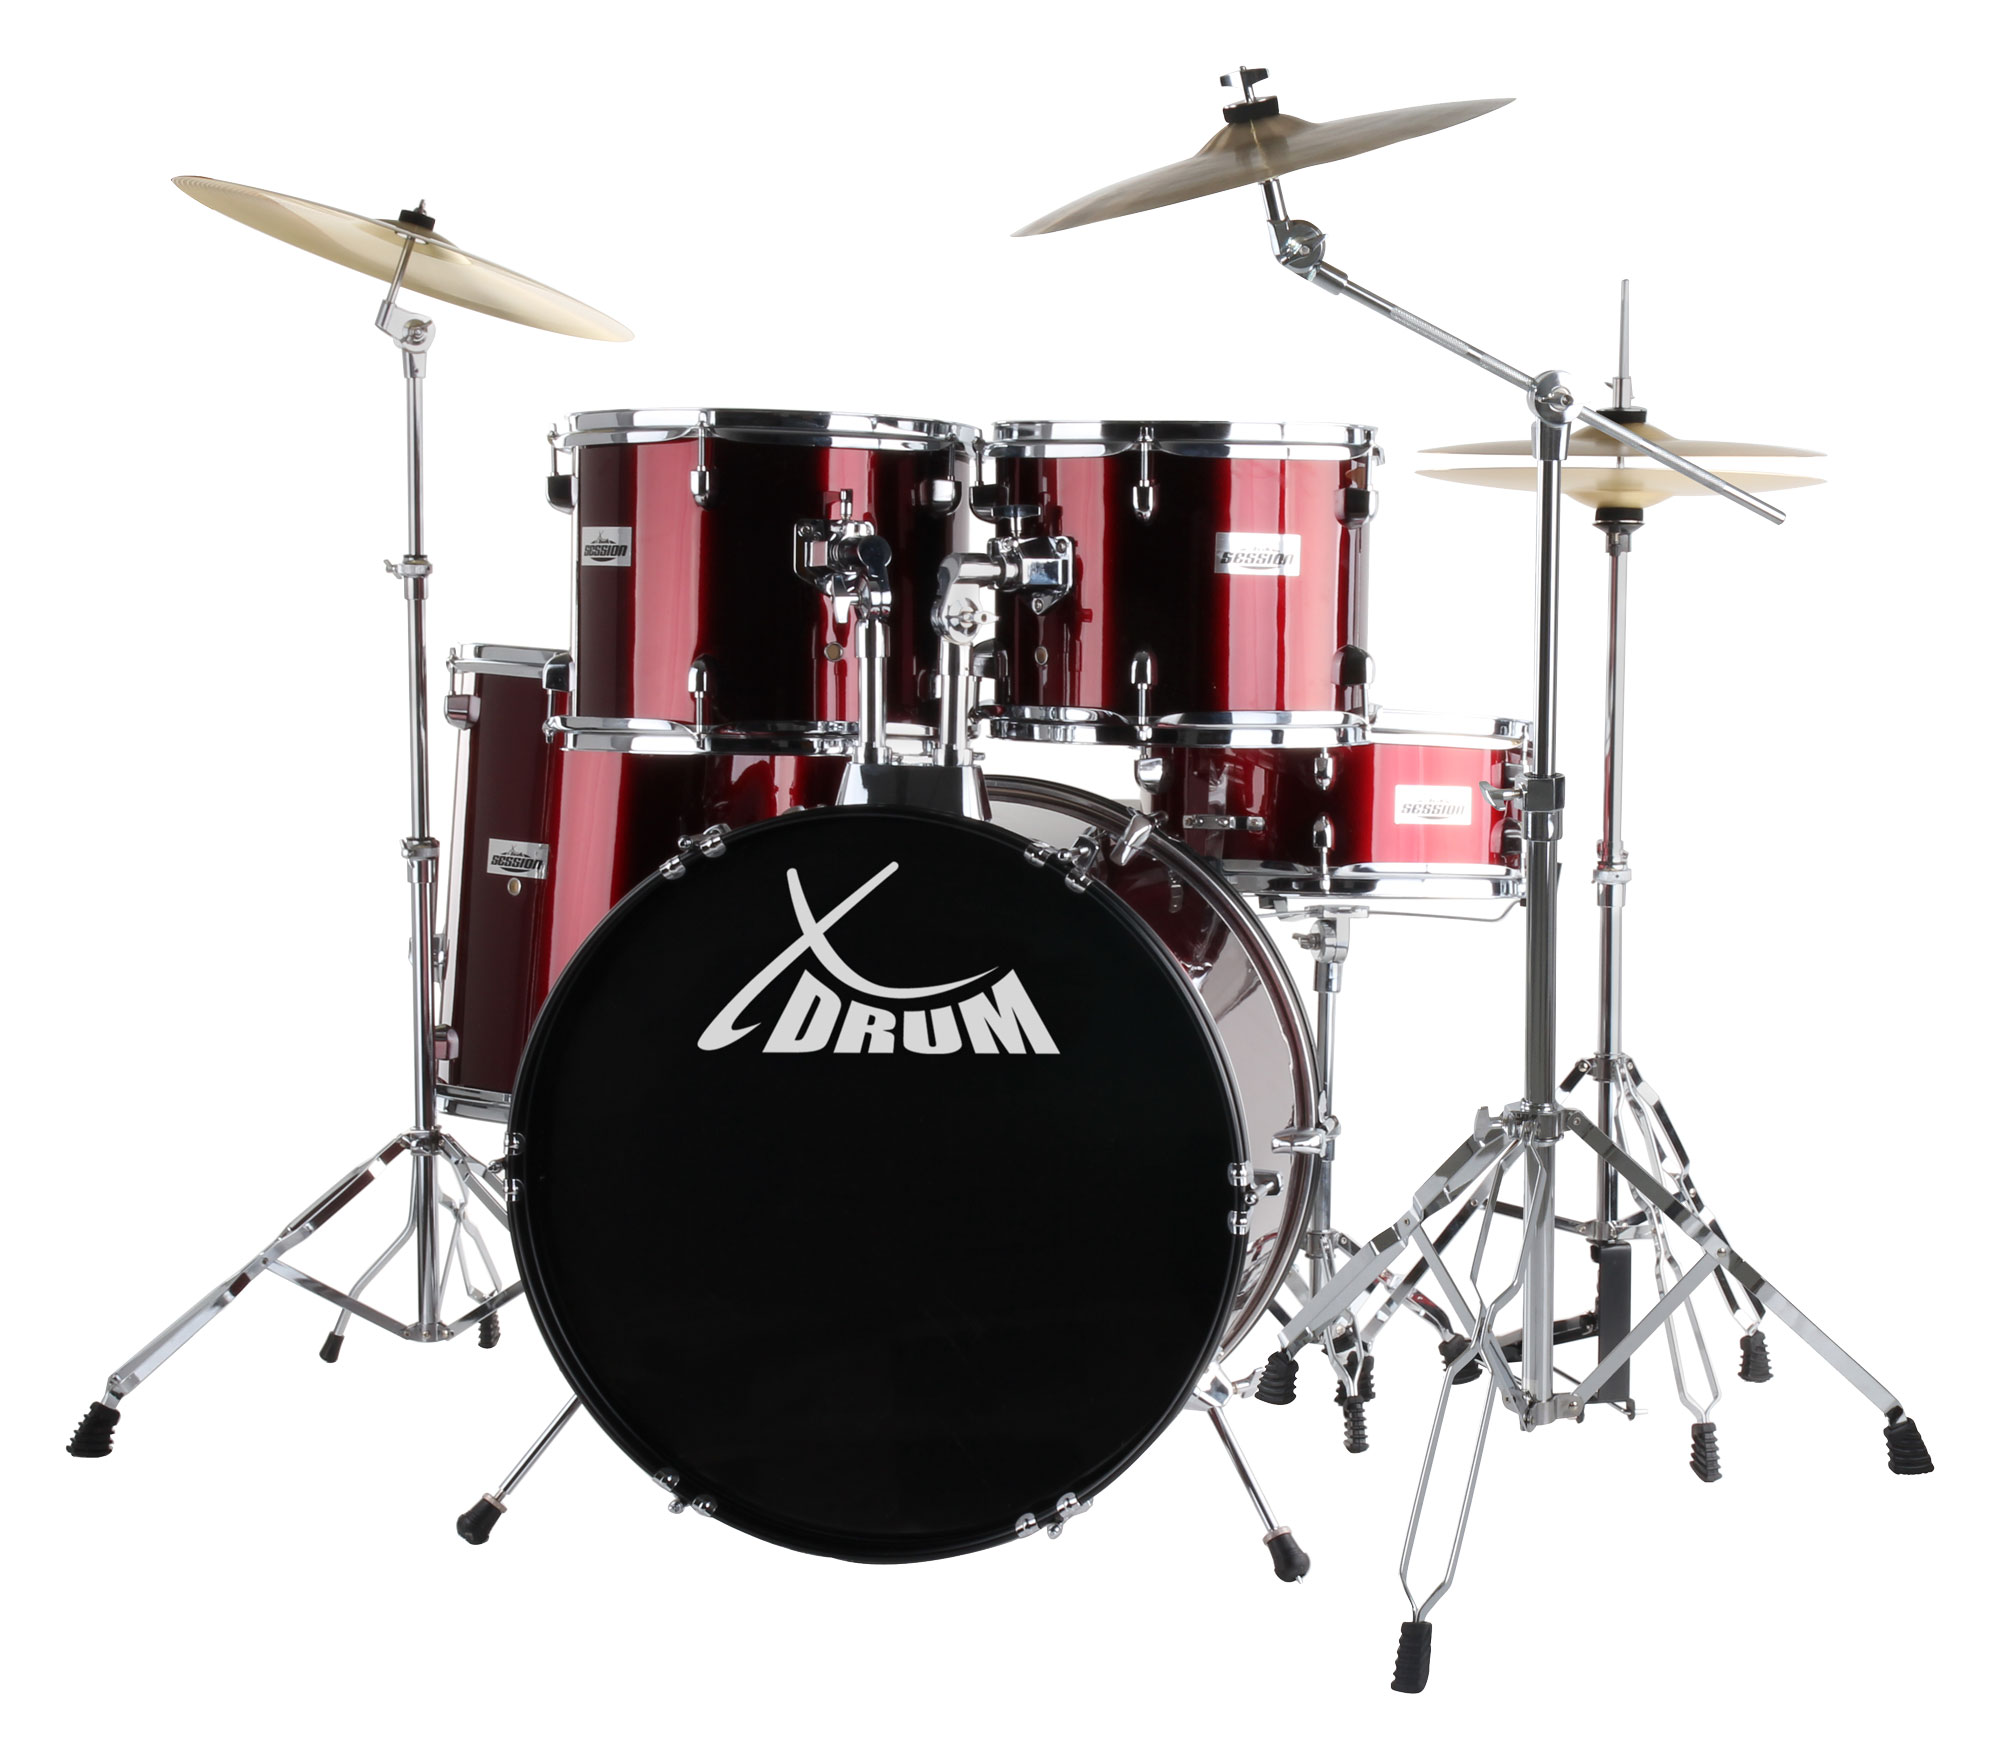 xdrum semi 20 standard drumset red set incl boom stand crash cymbals kirstein music shop. Black Bedroom Furniture Sets. Home Design Ideas